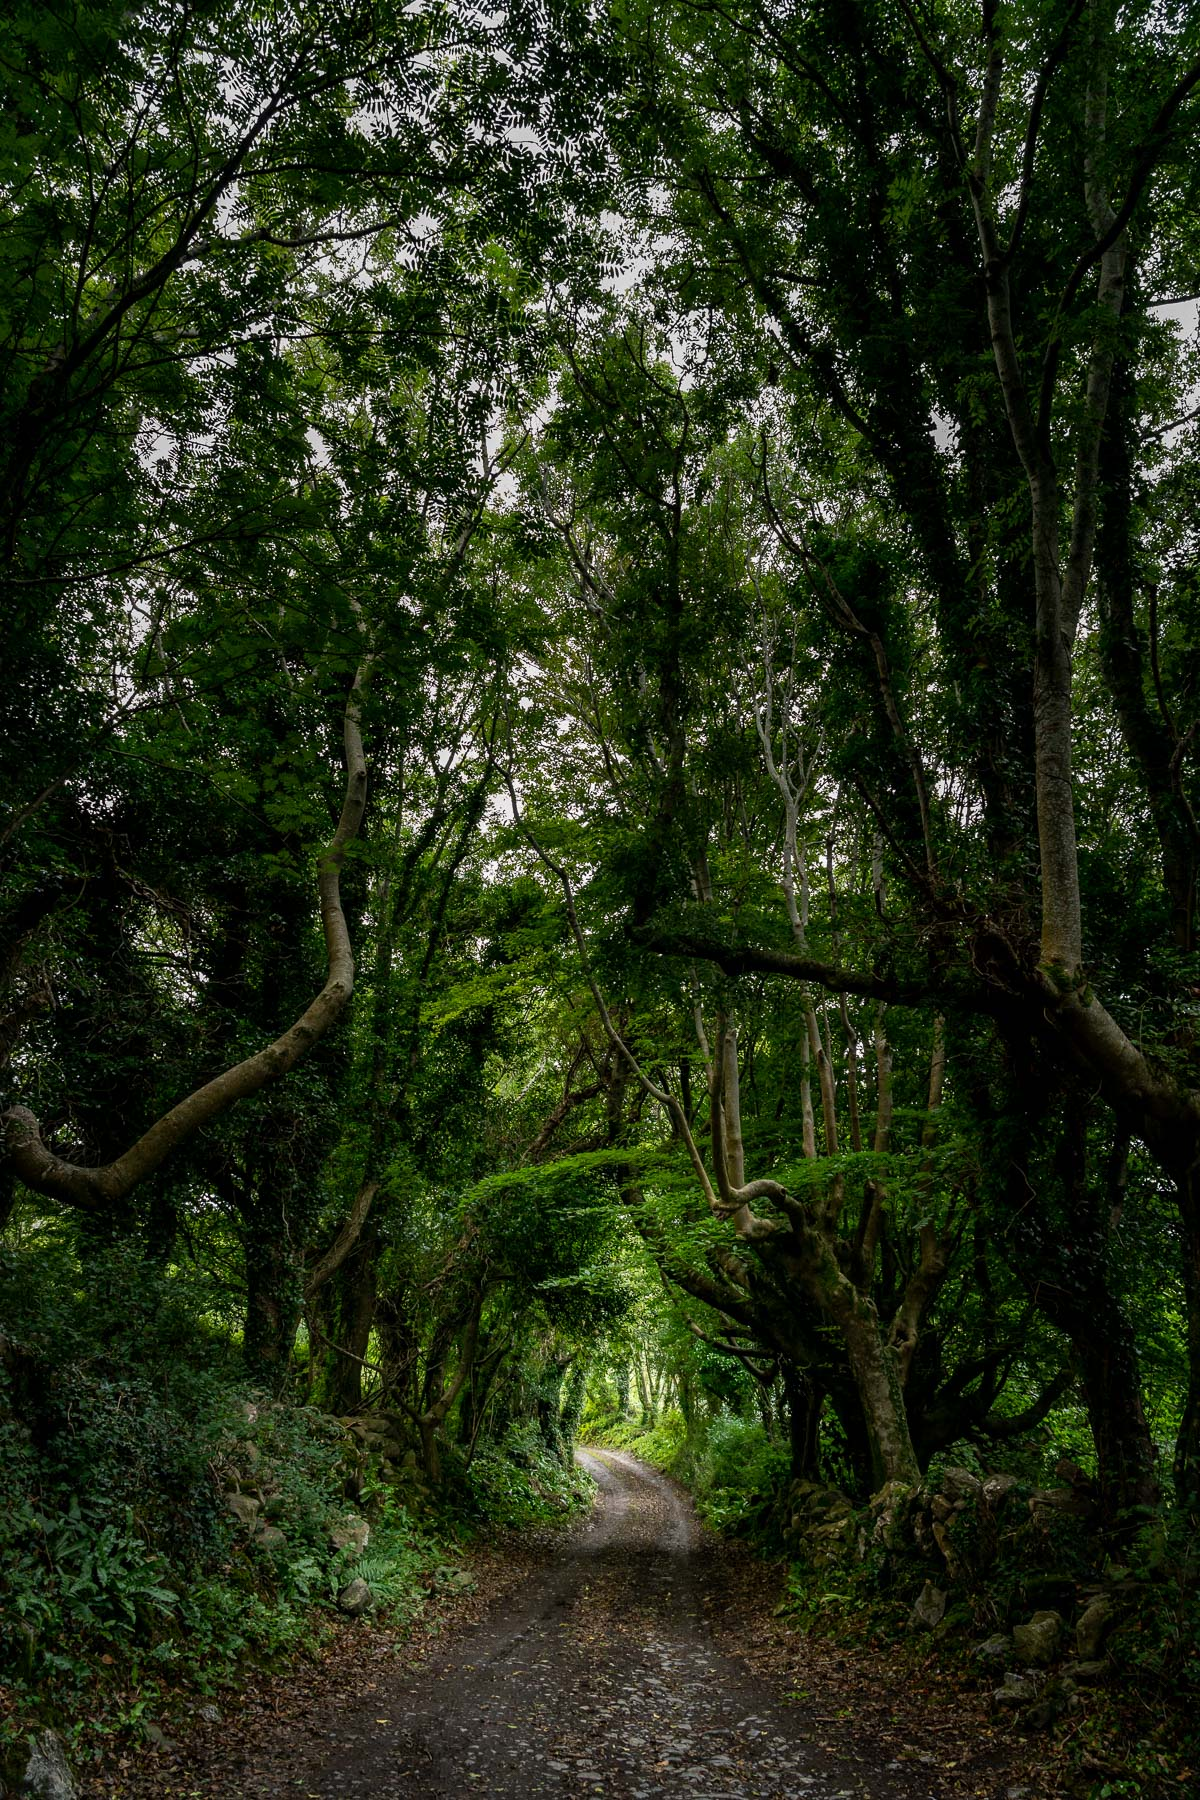 A Road Through the Trees